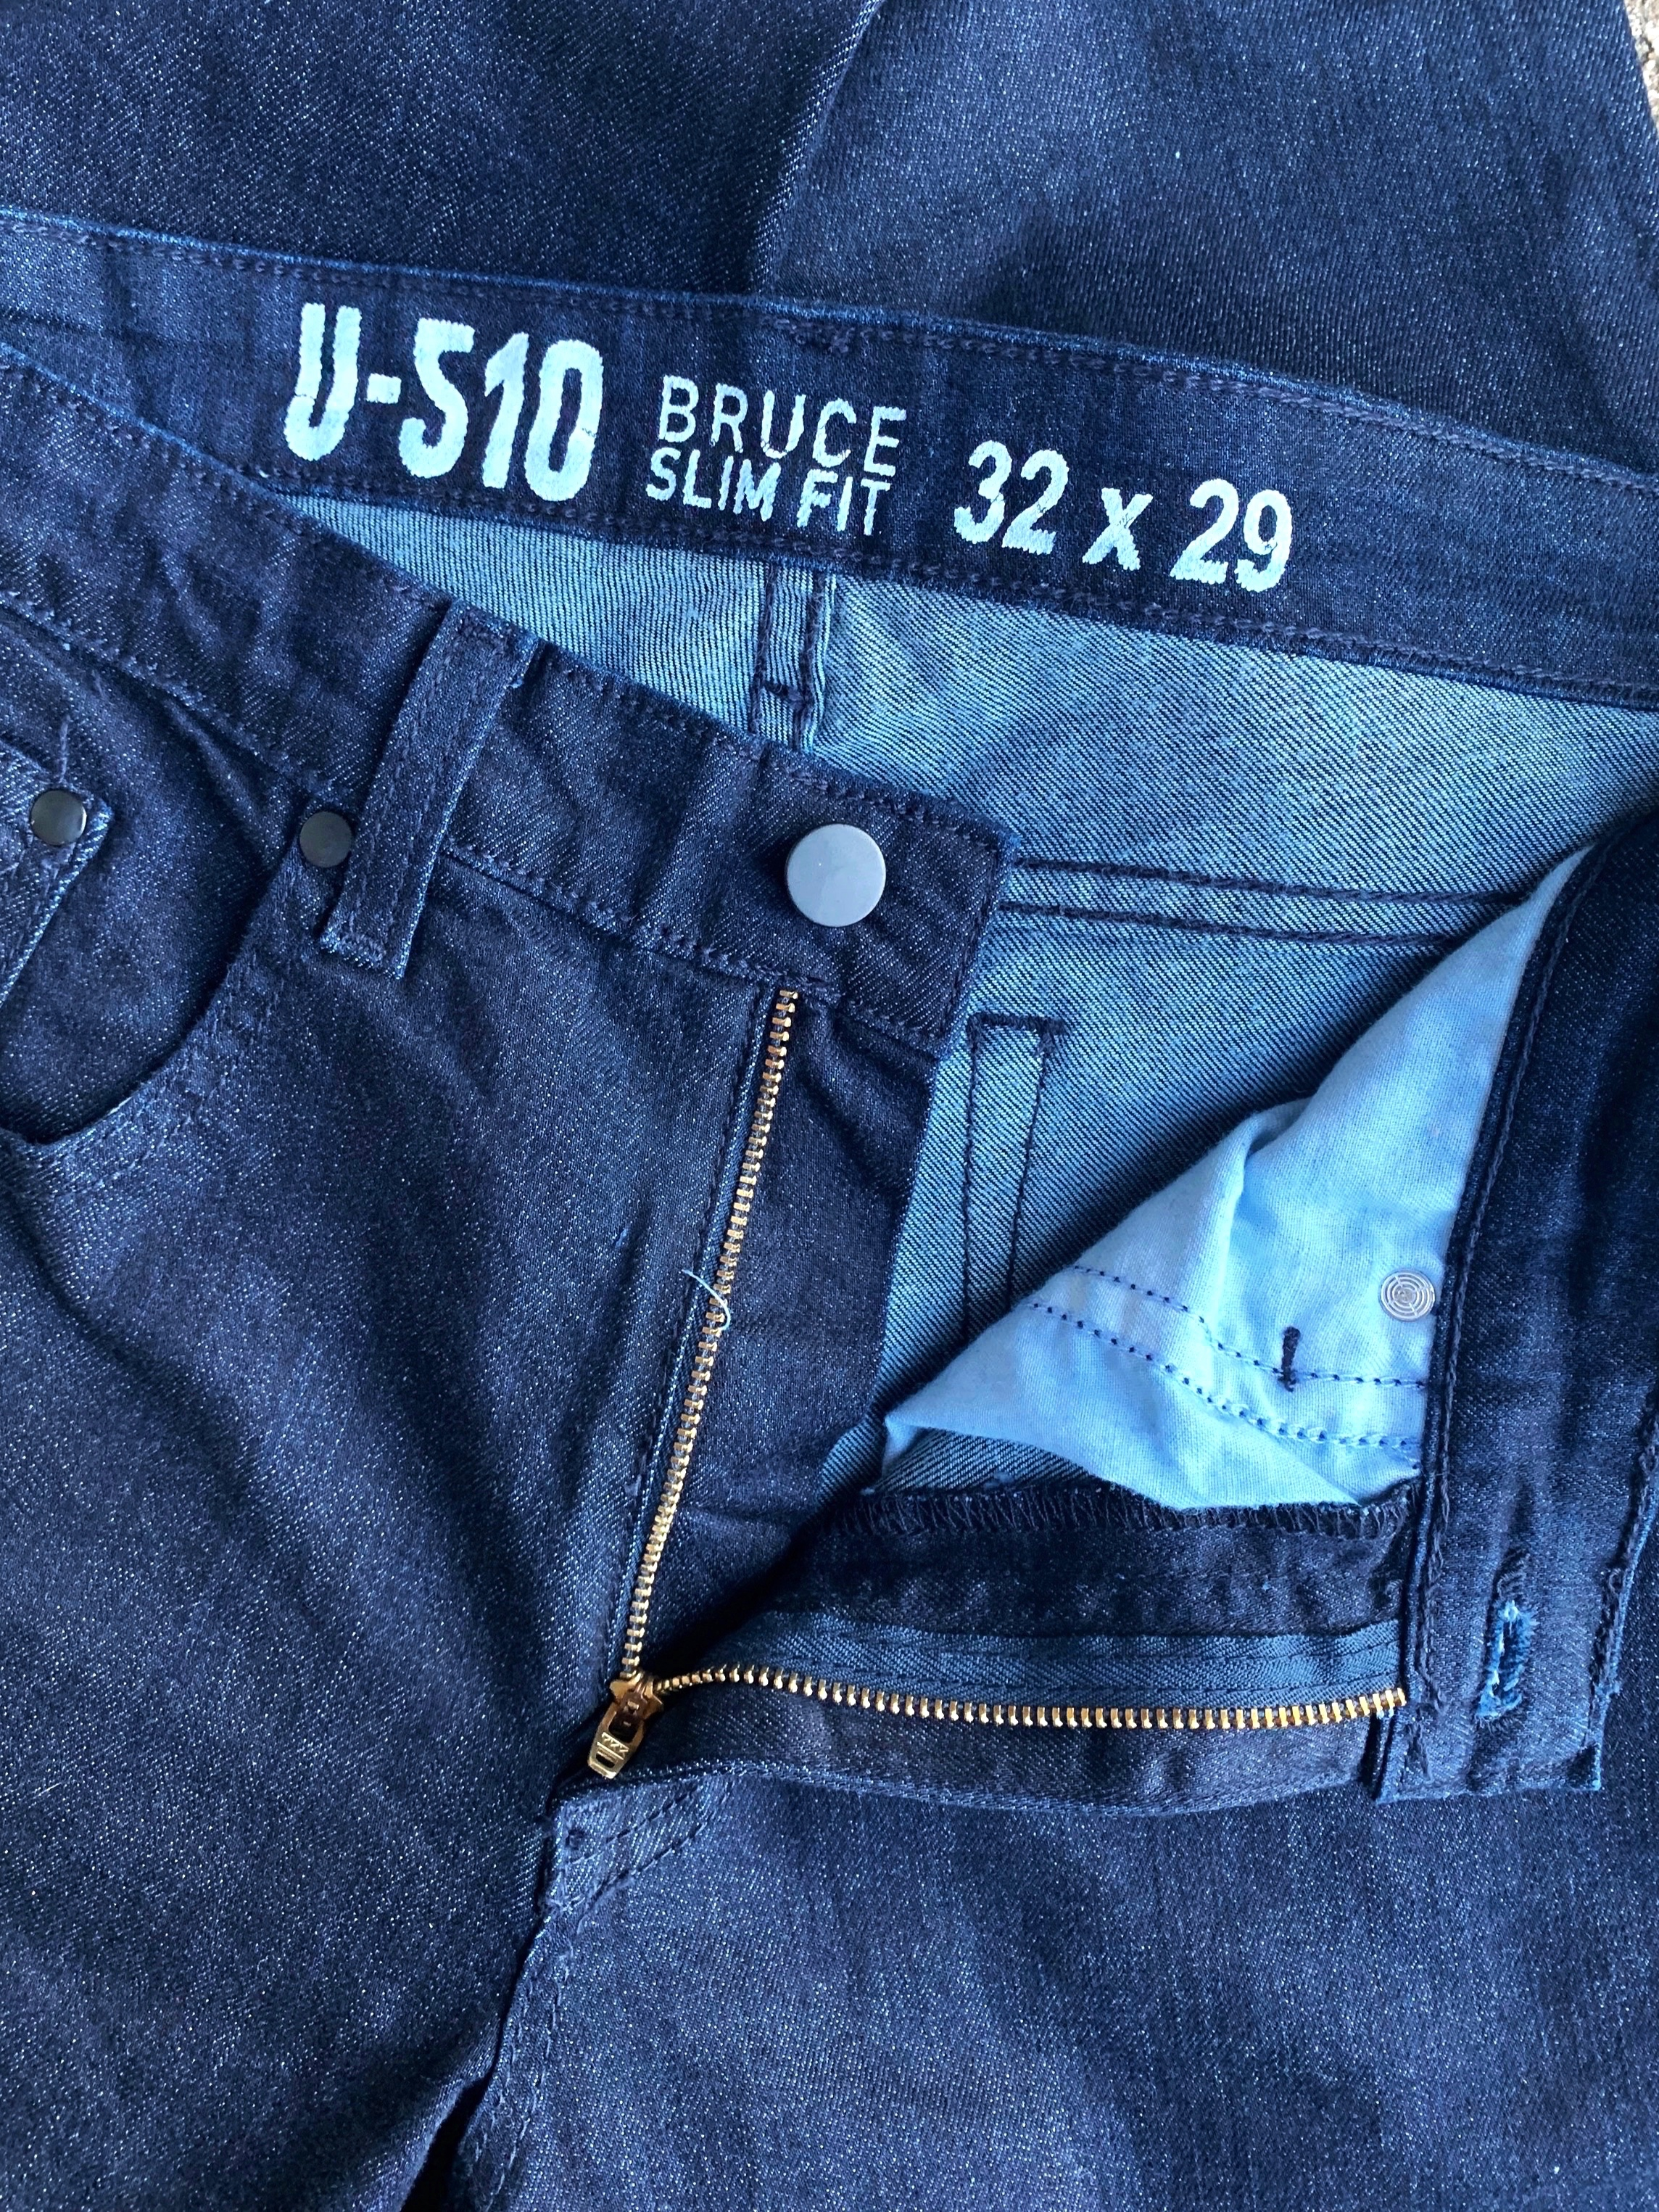 Under 510's signature Bruce jean, coming in inseams down to 26 inches, now in Cone Denim fabric!